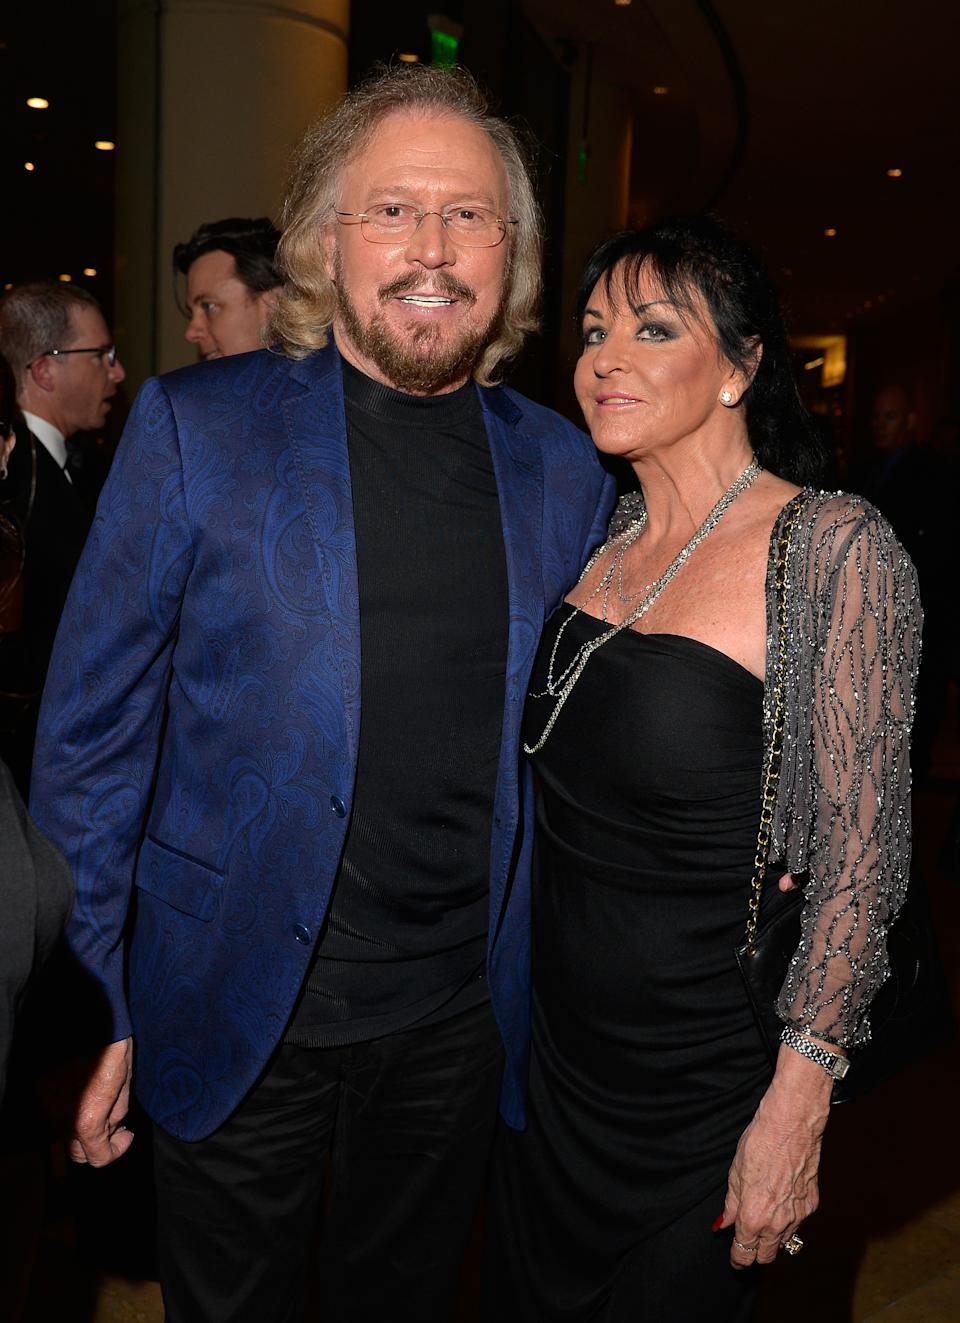 LOS ANGELES, CA - FEBRUARY 07: Recording artist Barry Gibb (L) and Linda Gray attend the Pre-GRAMMY Gala and Salute to Industry Icons honoring Martin Bandier at The Beverly Hilton Hotel on February 7, 2015 in Los Angeles, California. (Photo by Lester Cohen/WireImage)